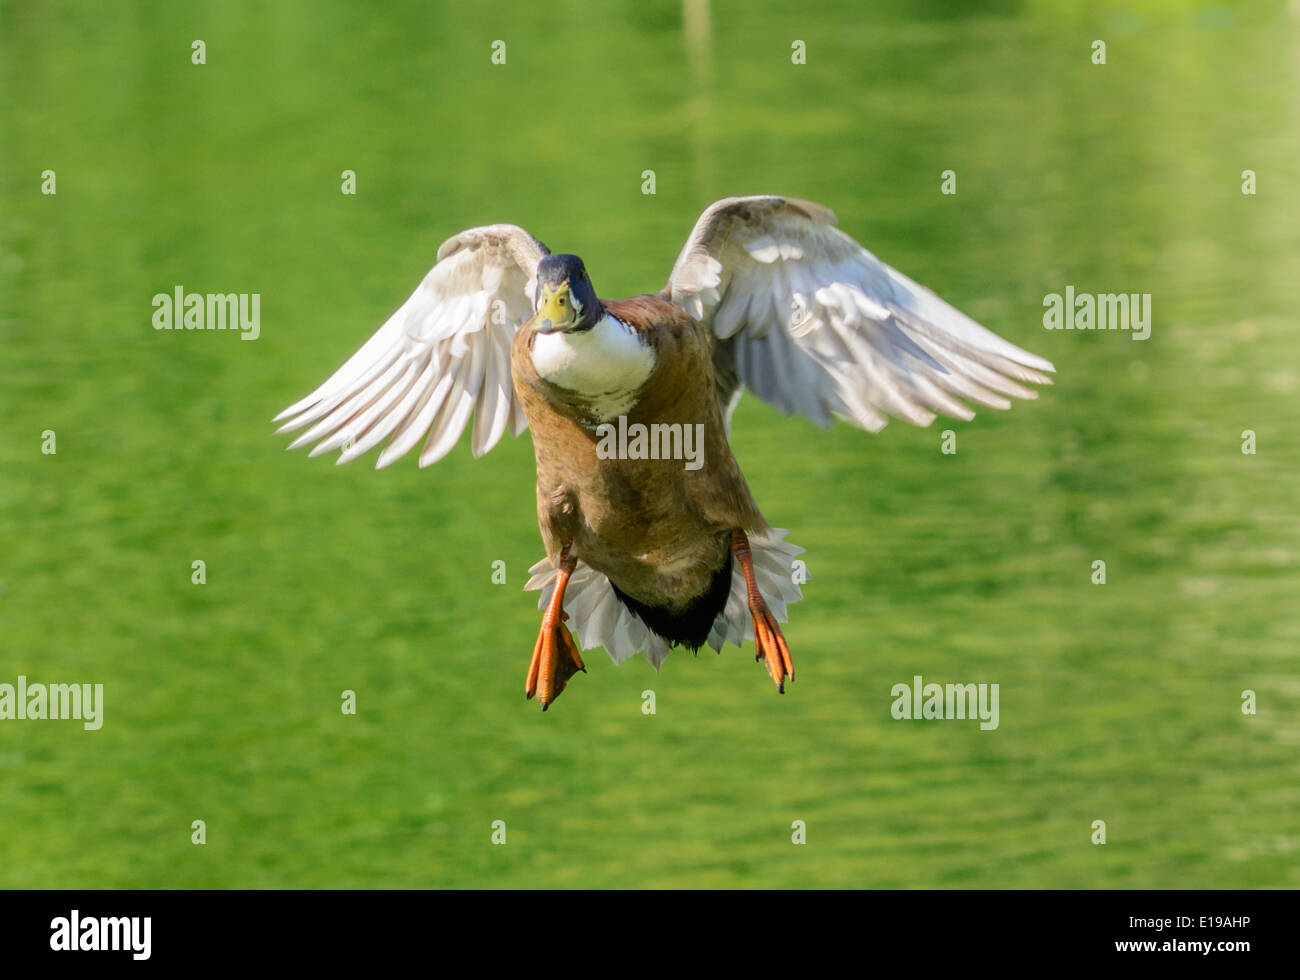 Drake brown duck, probably a Mallard hybrid, flying low towards the camera in Spring in the UK. - Stock Image